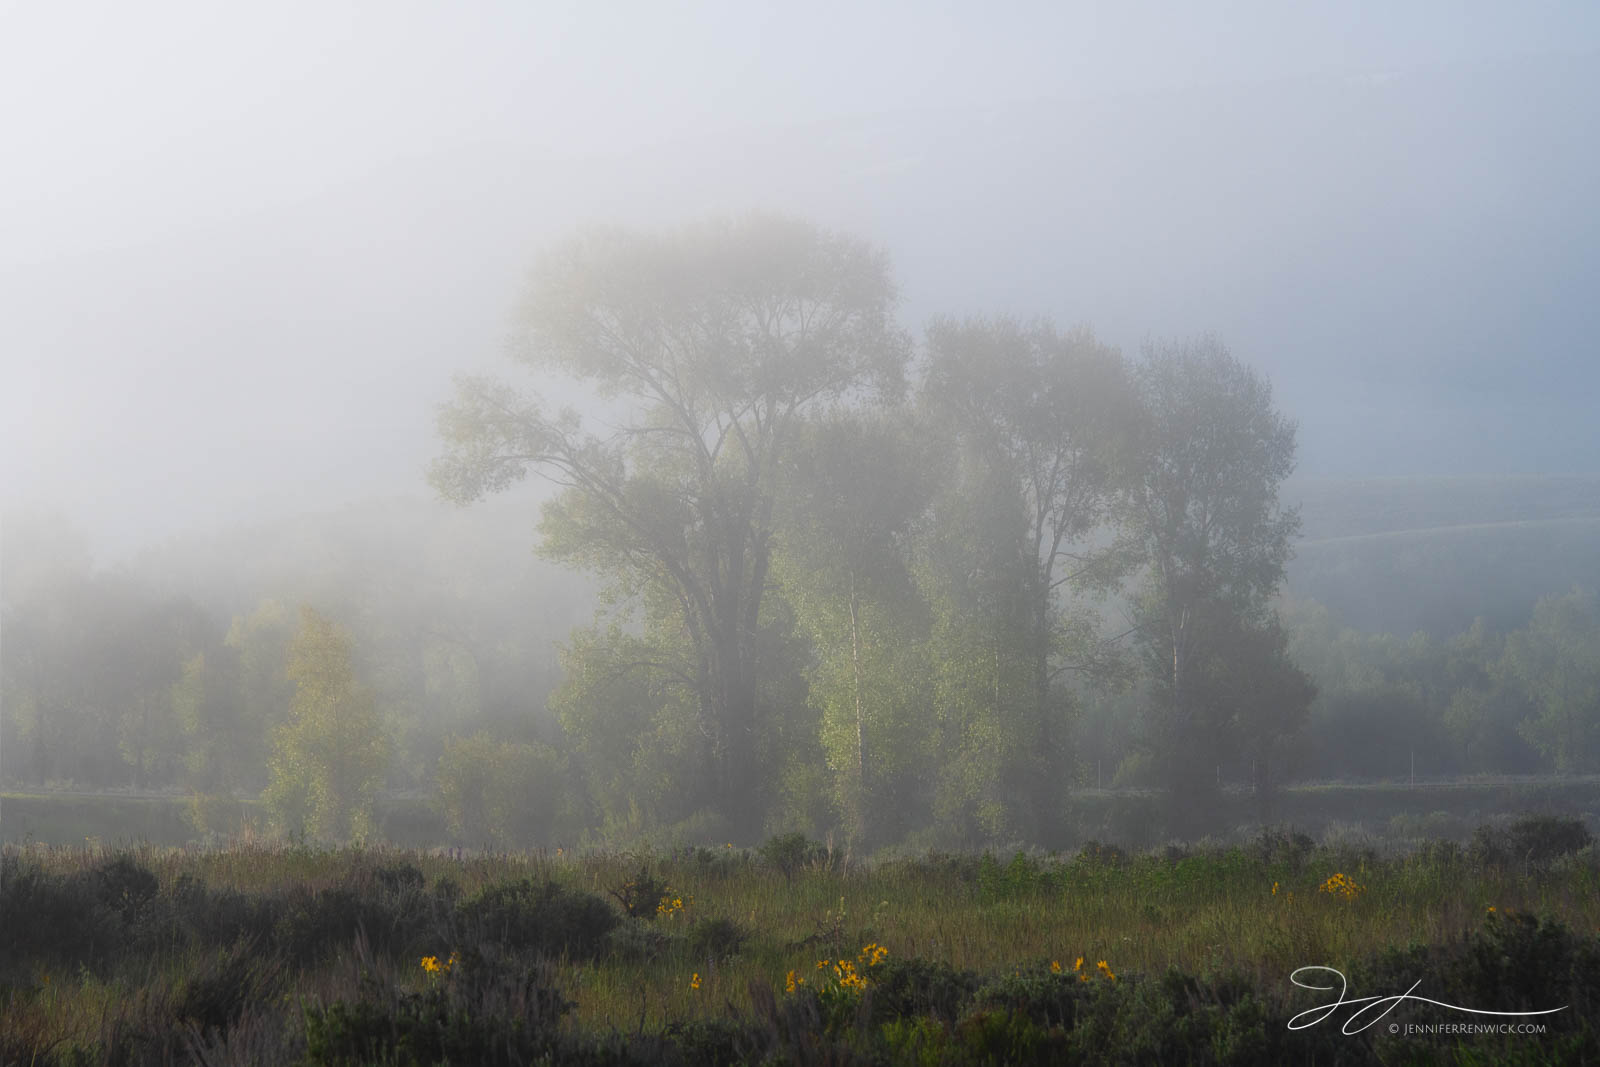 A foggy morning surrounds flowers and cottonwood trees during a sunrise.